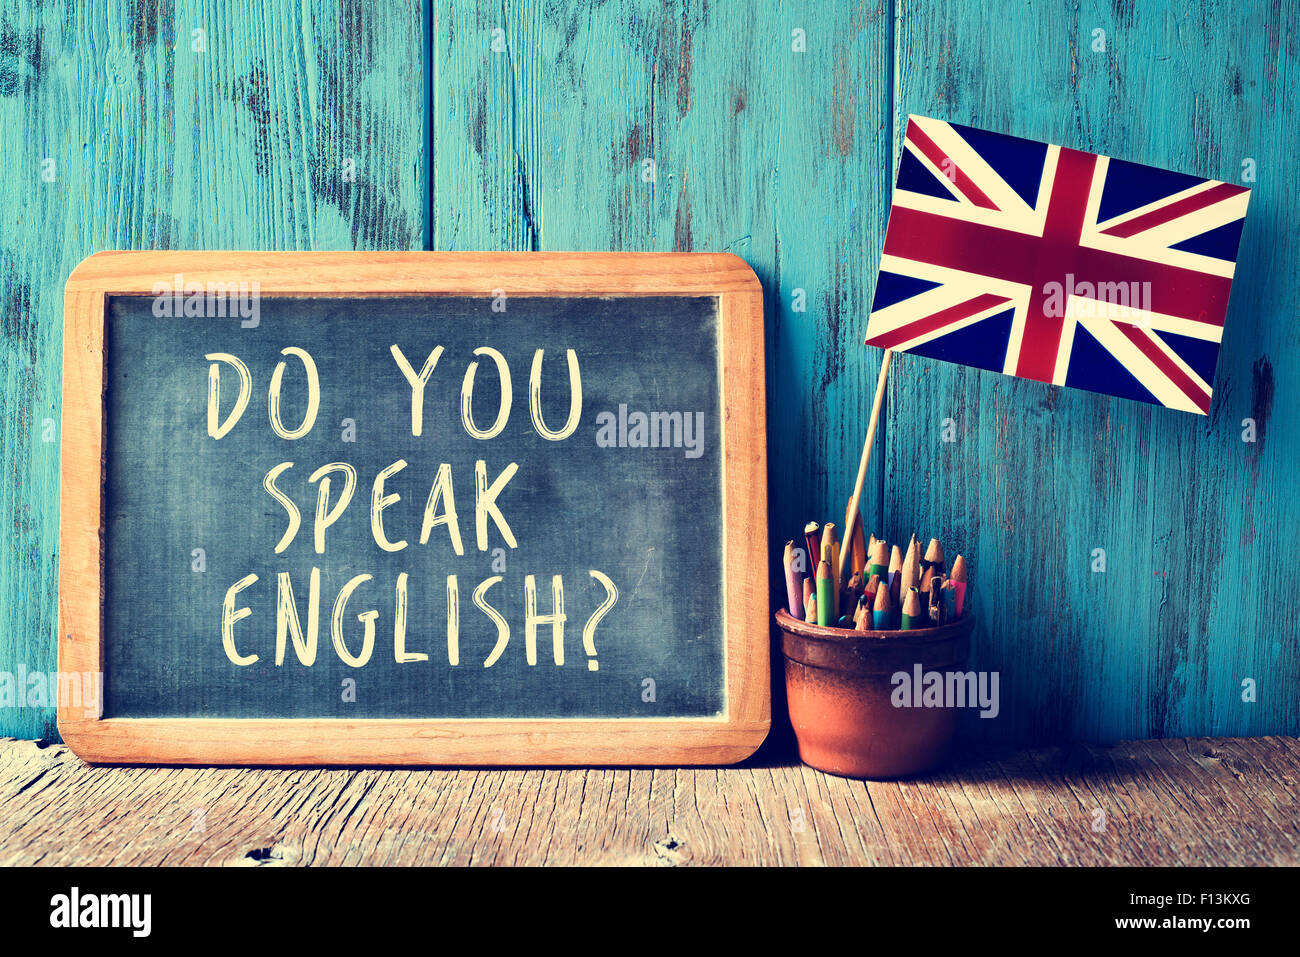 a chalkboard with the text do you speak english? written in it, a pot with pencils and the flag of the United Kingdom, - Stock Image